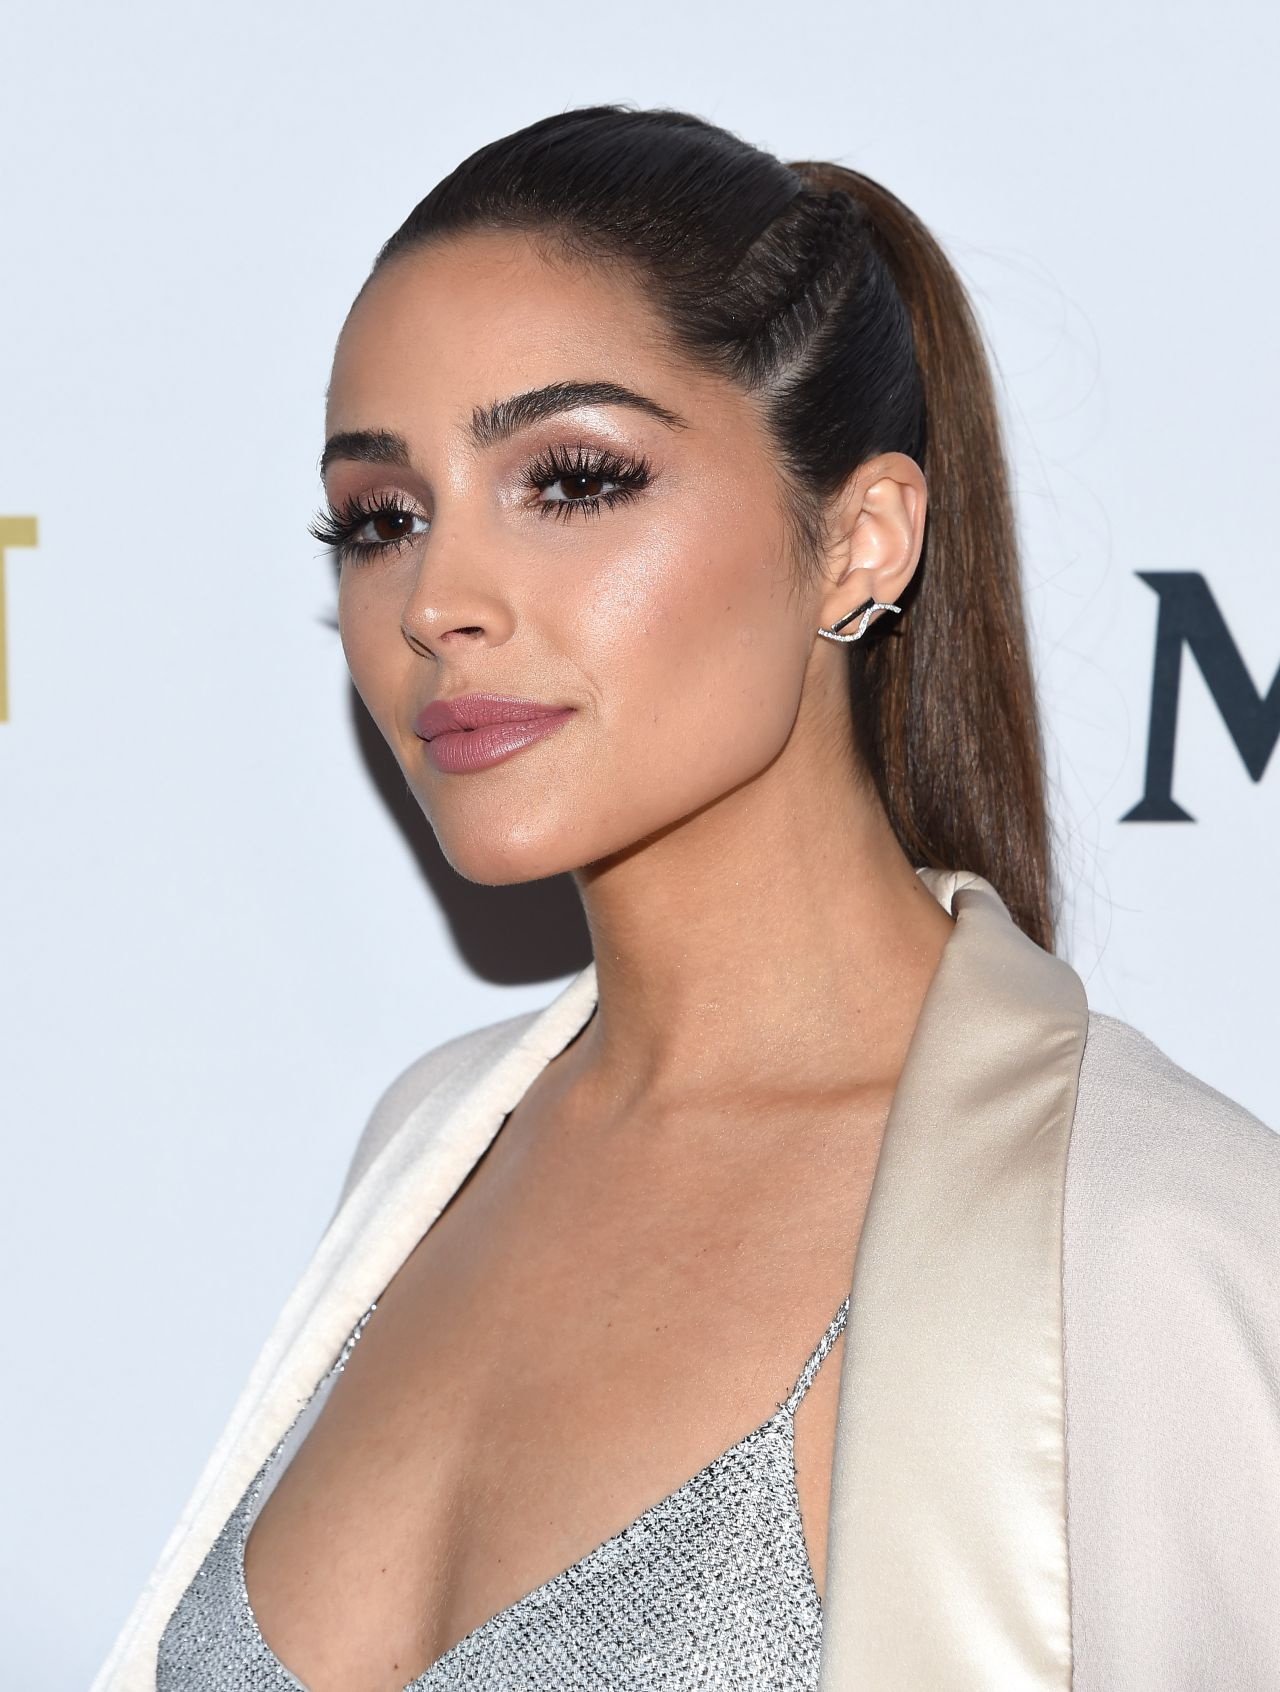 Olivia Culpo Moet Moment Film Festival Los Angeles